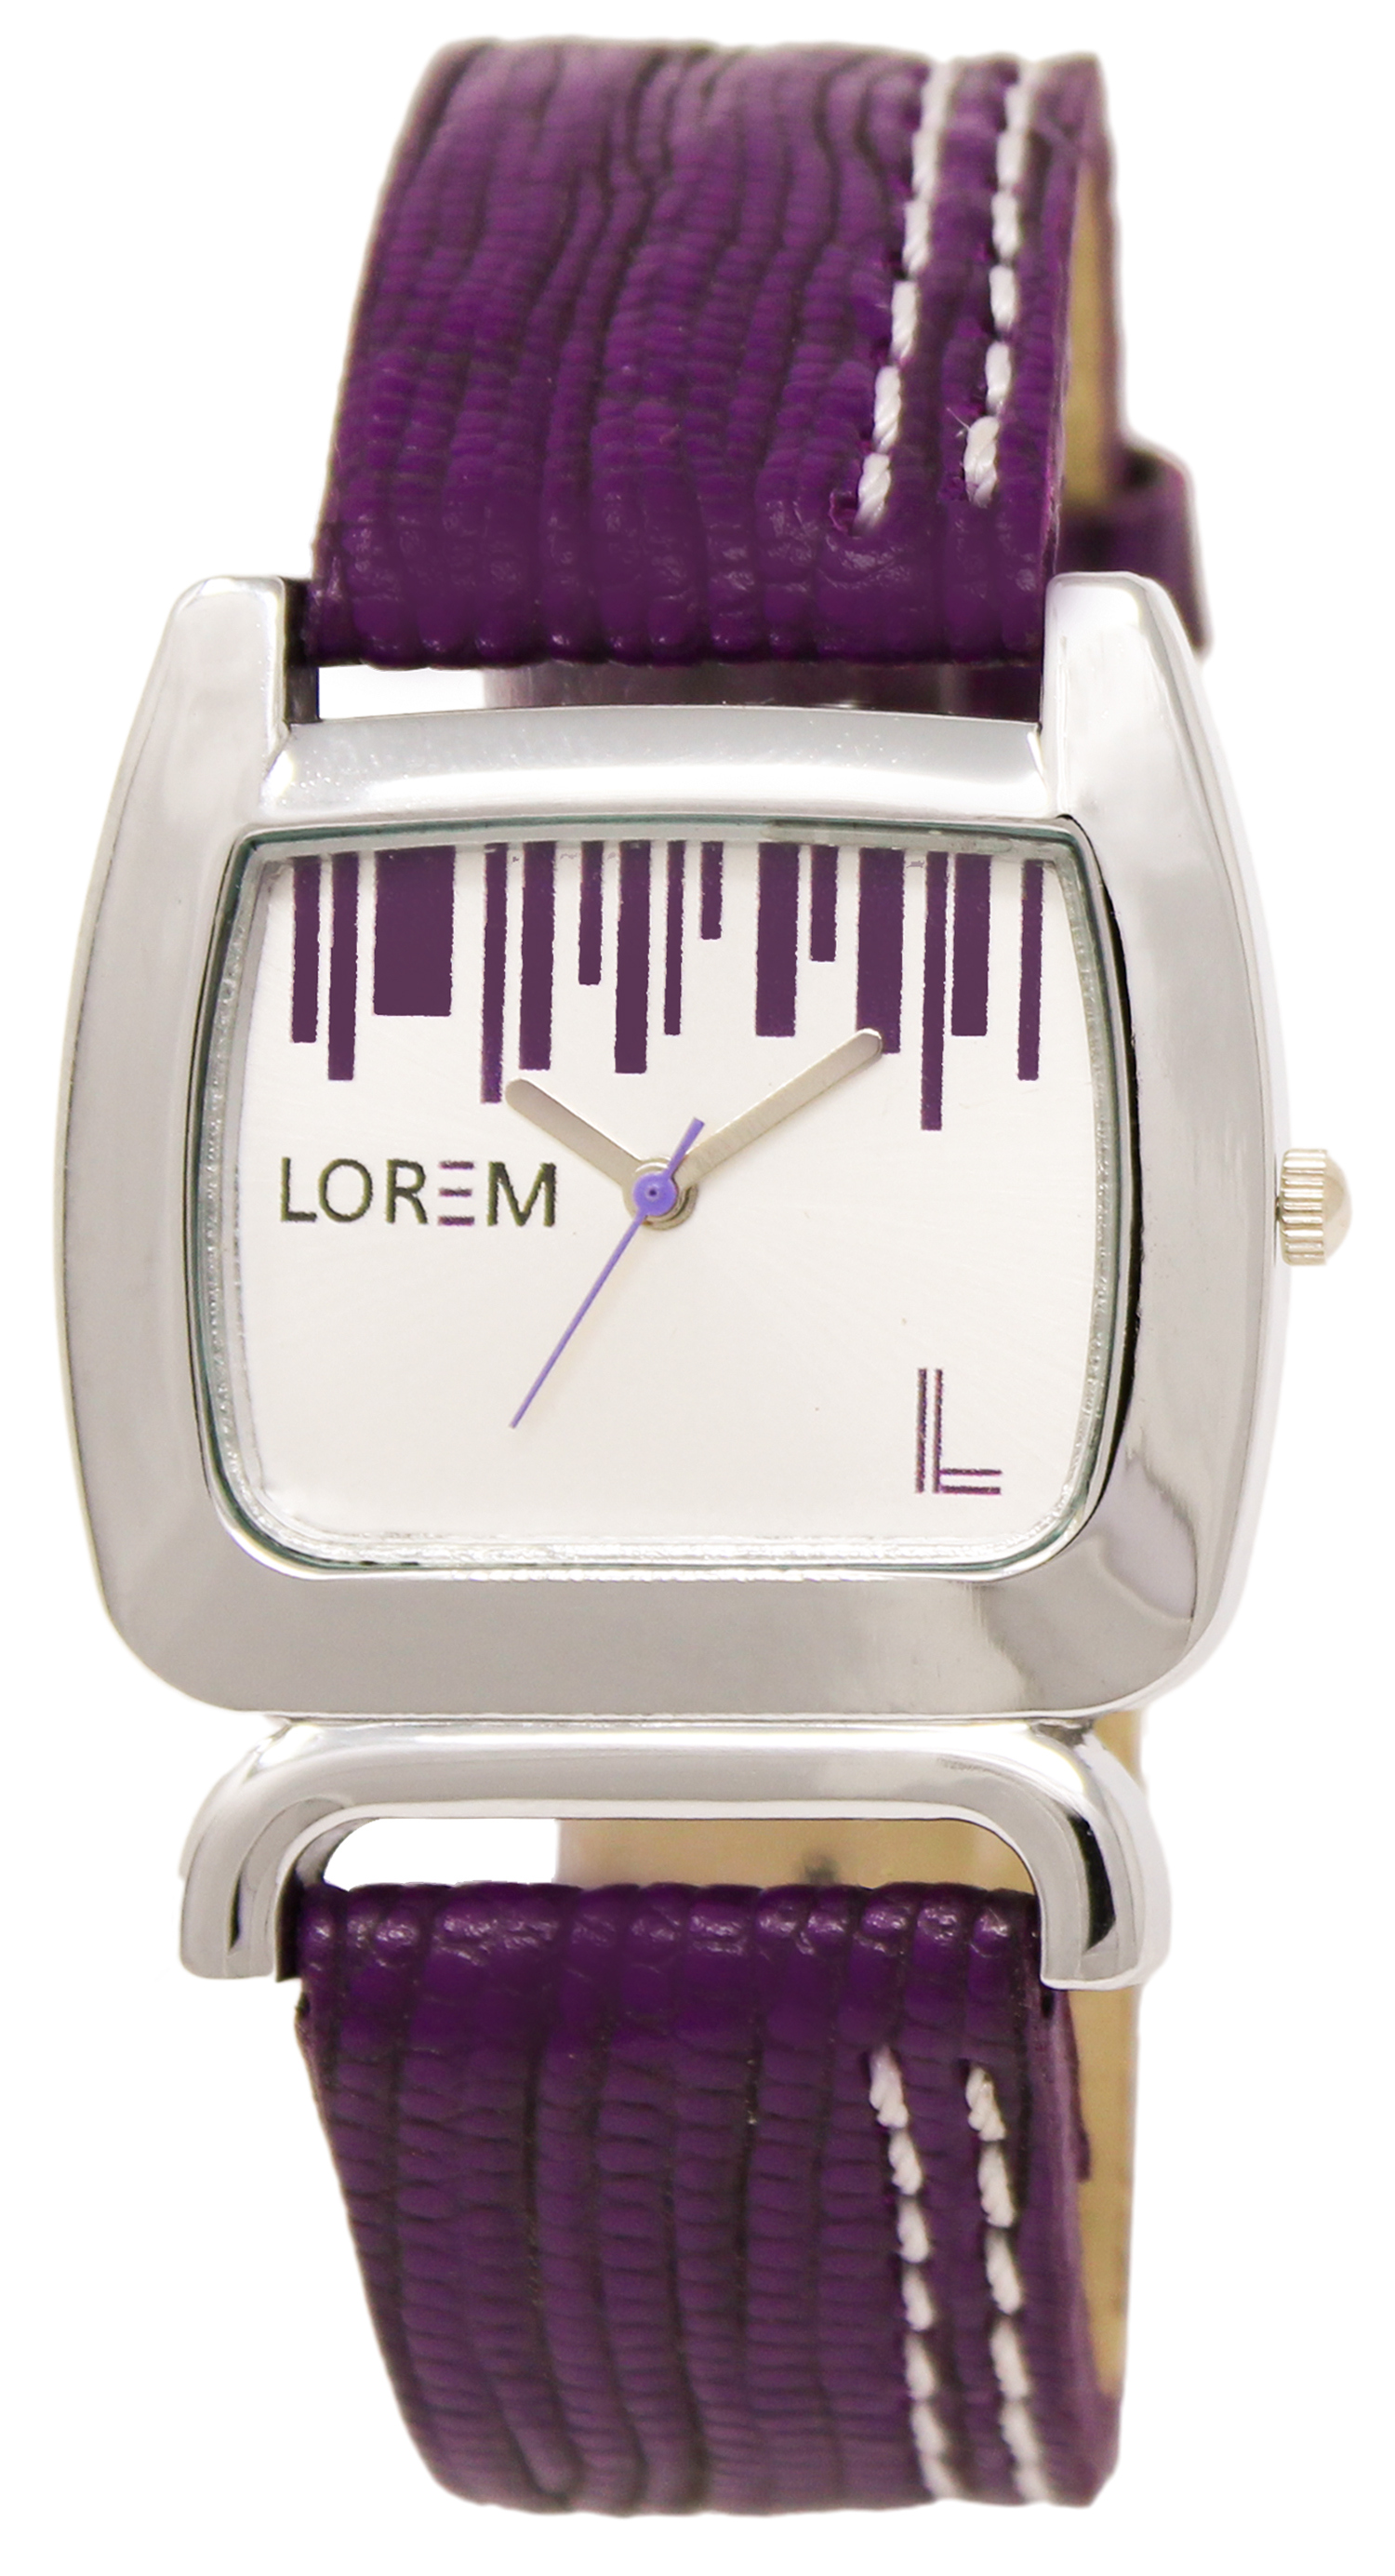 LOREM Analogue White Dial Leather Strap Watch For Women And Girls